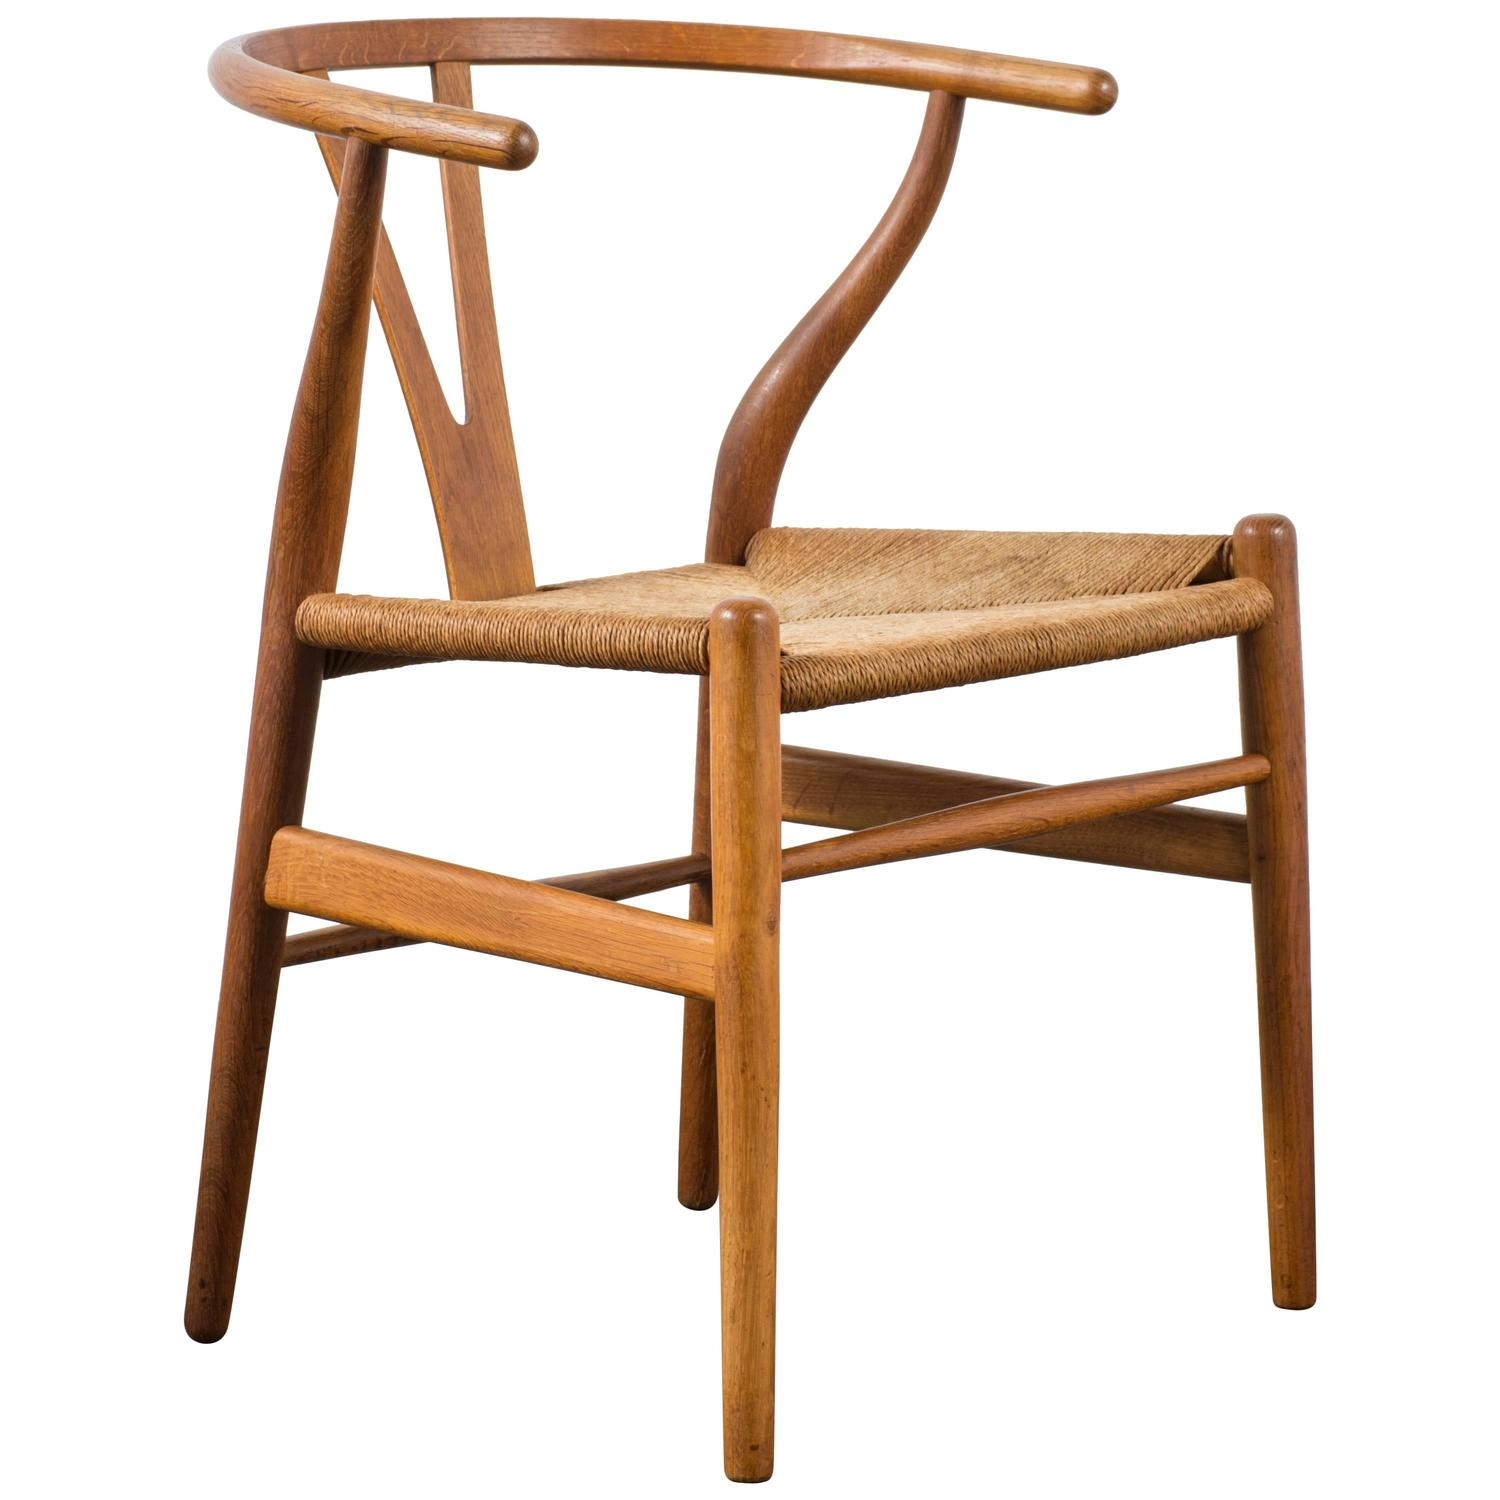 early vintage mid century wishbone chair by hans wegner at 1stdibs. Black Bedroom Furniture Sets. Home Design Ideas